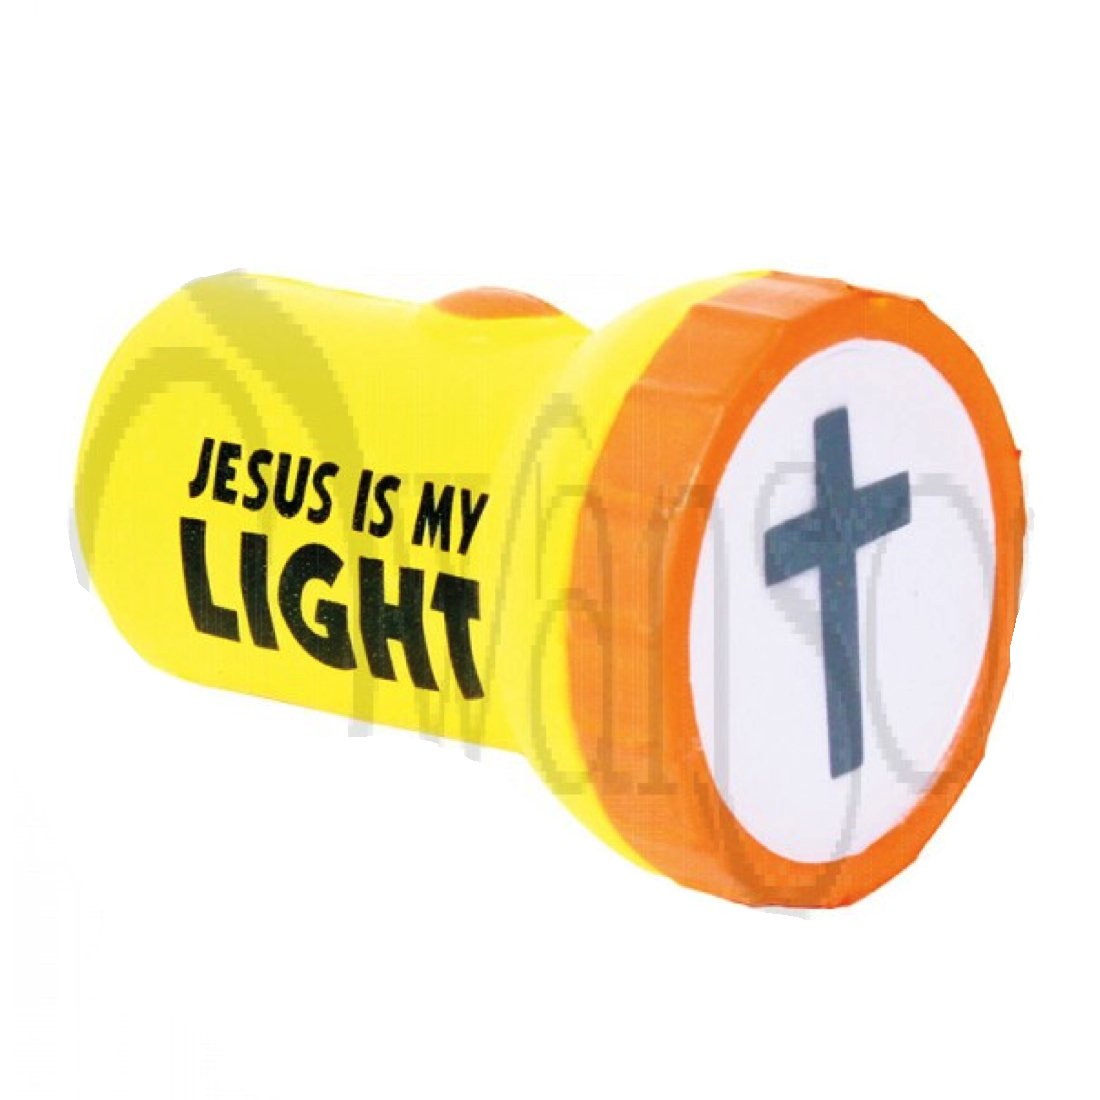 Jesus My Light Squeeze Toys Flashlight 12 Pack Christian Party Favors